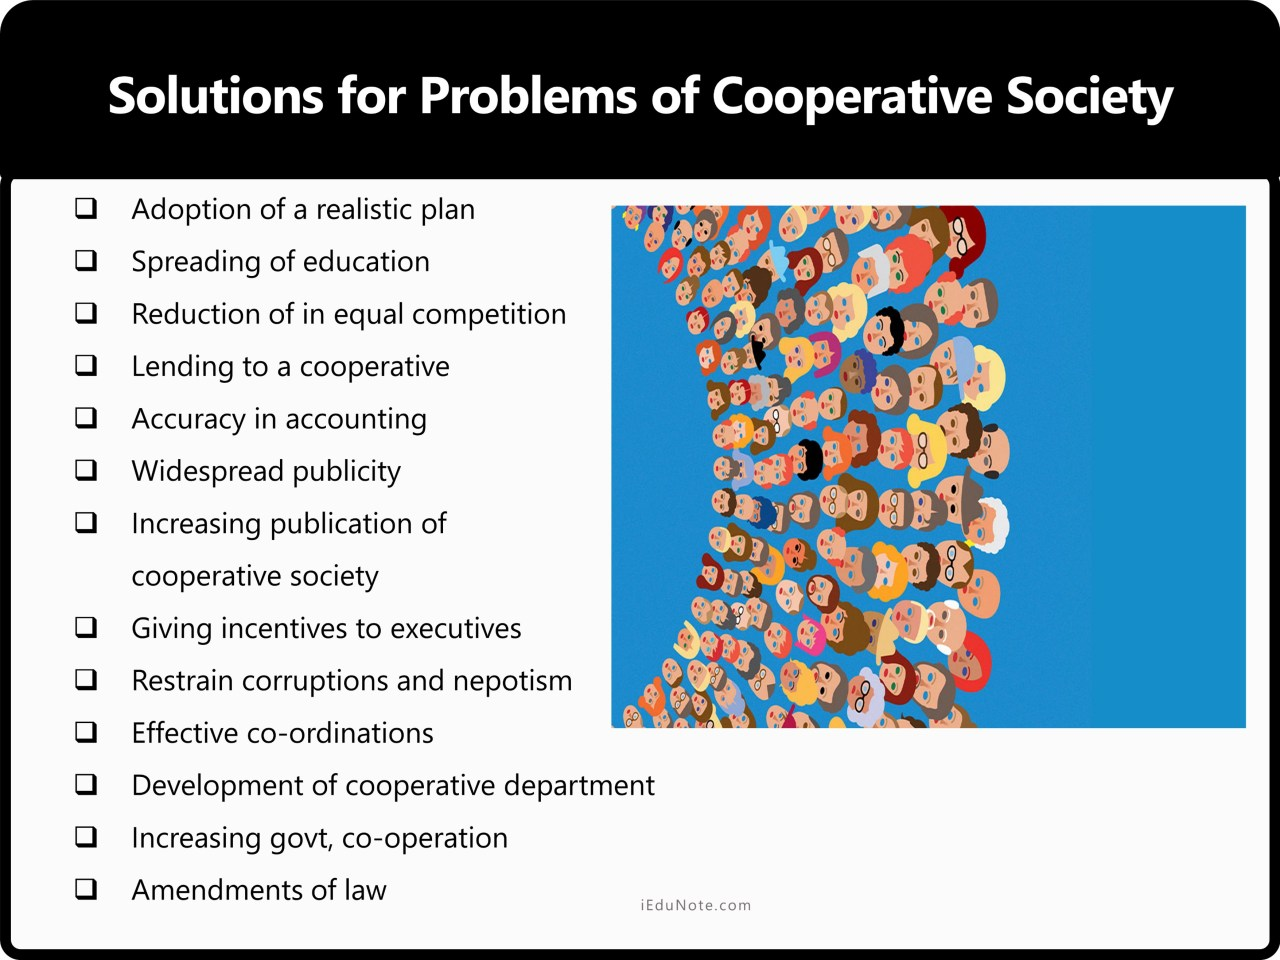 Solutions for Problems of Cooperative Society